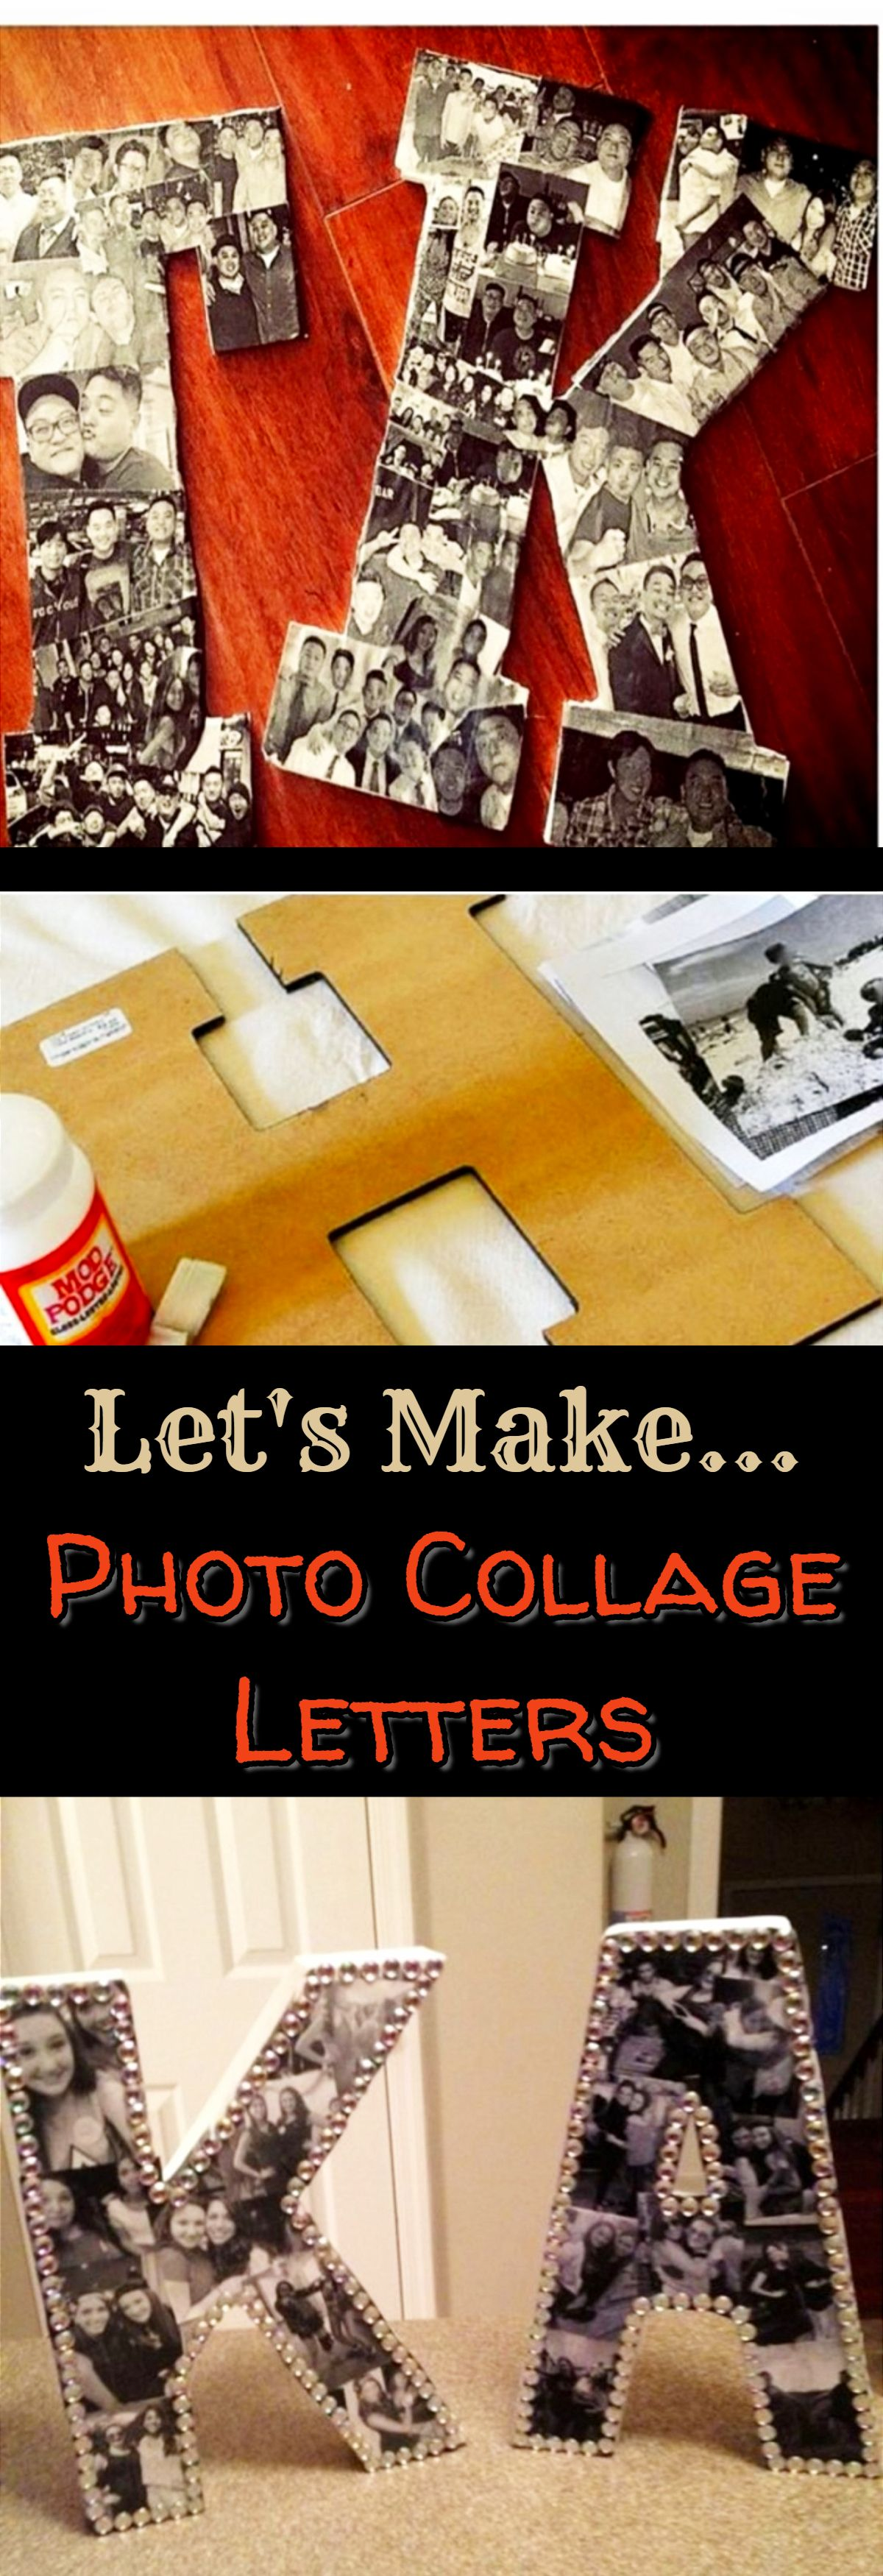 Diy picture collage letters ideas we tried it lets